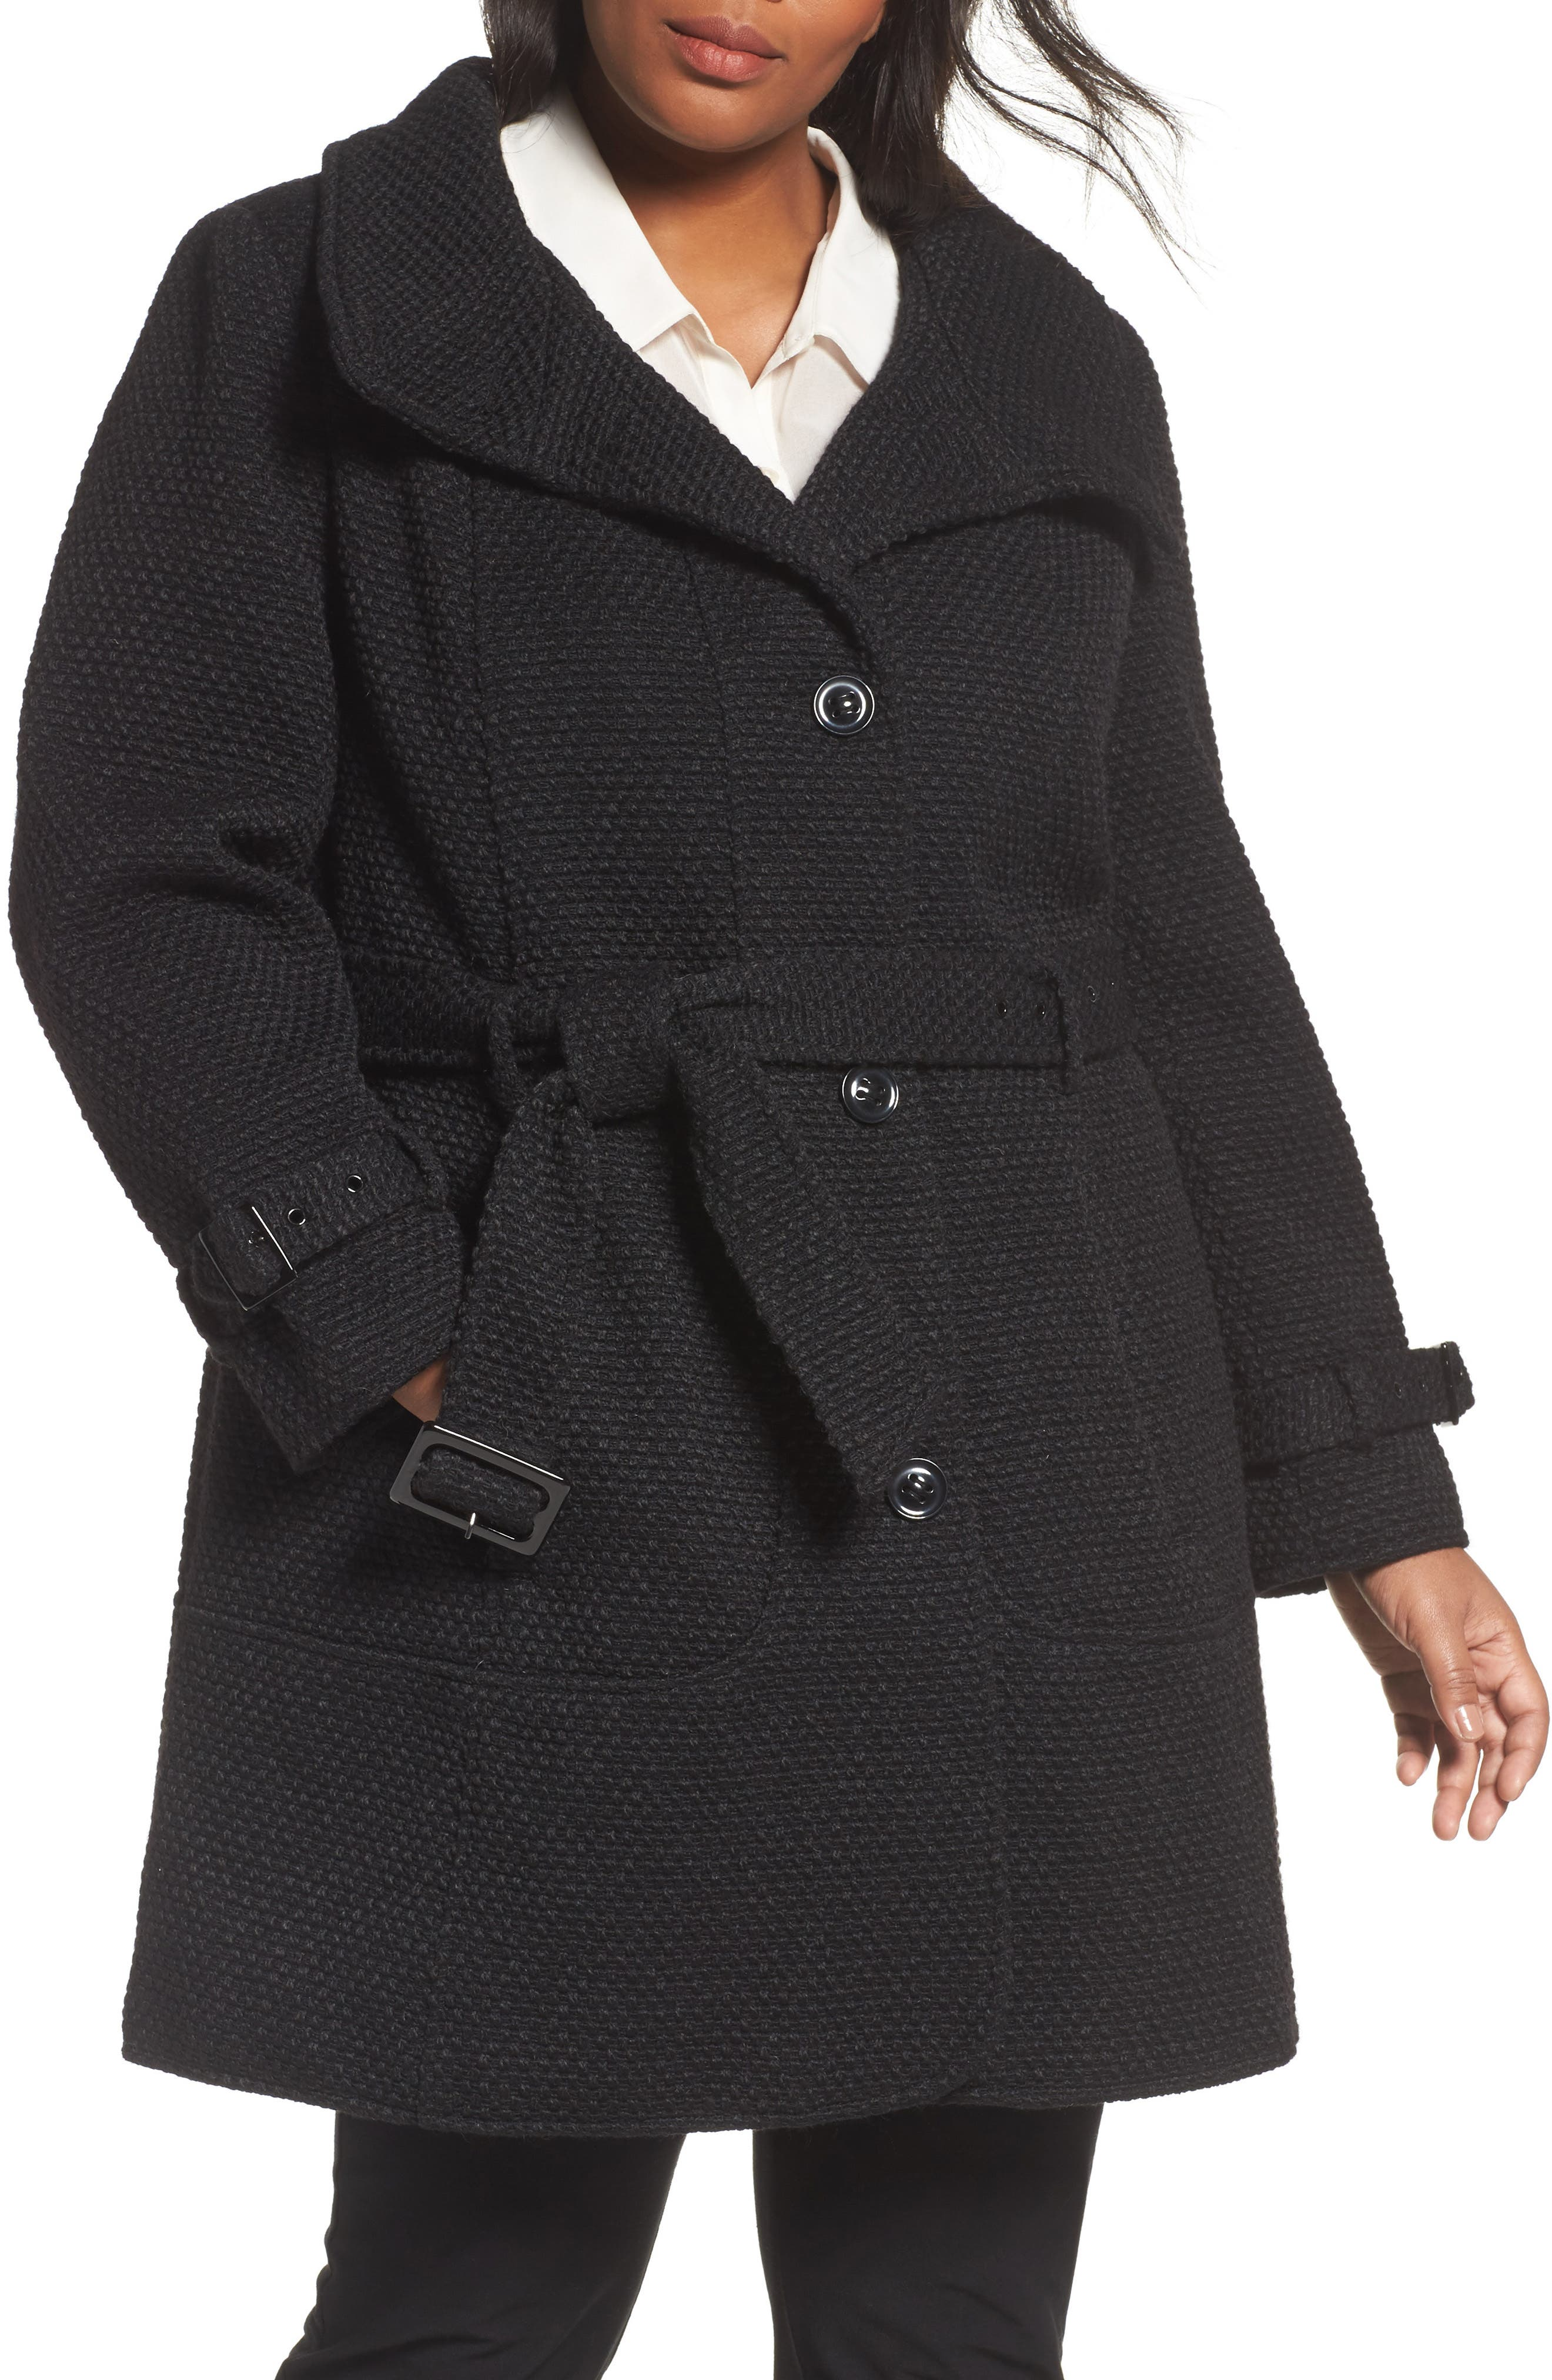 Alternate Image 1 Selected - Gallery Waffle Woven Coat (Plus Size)